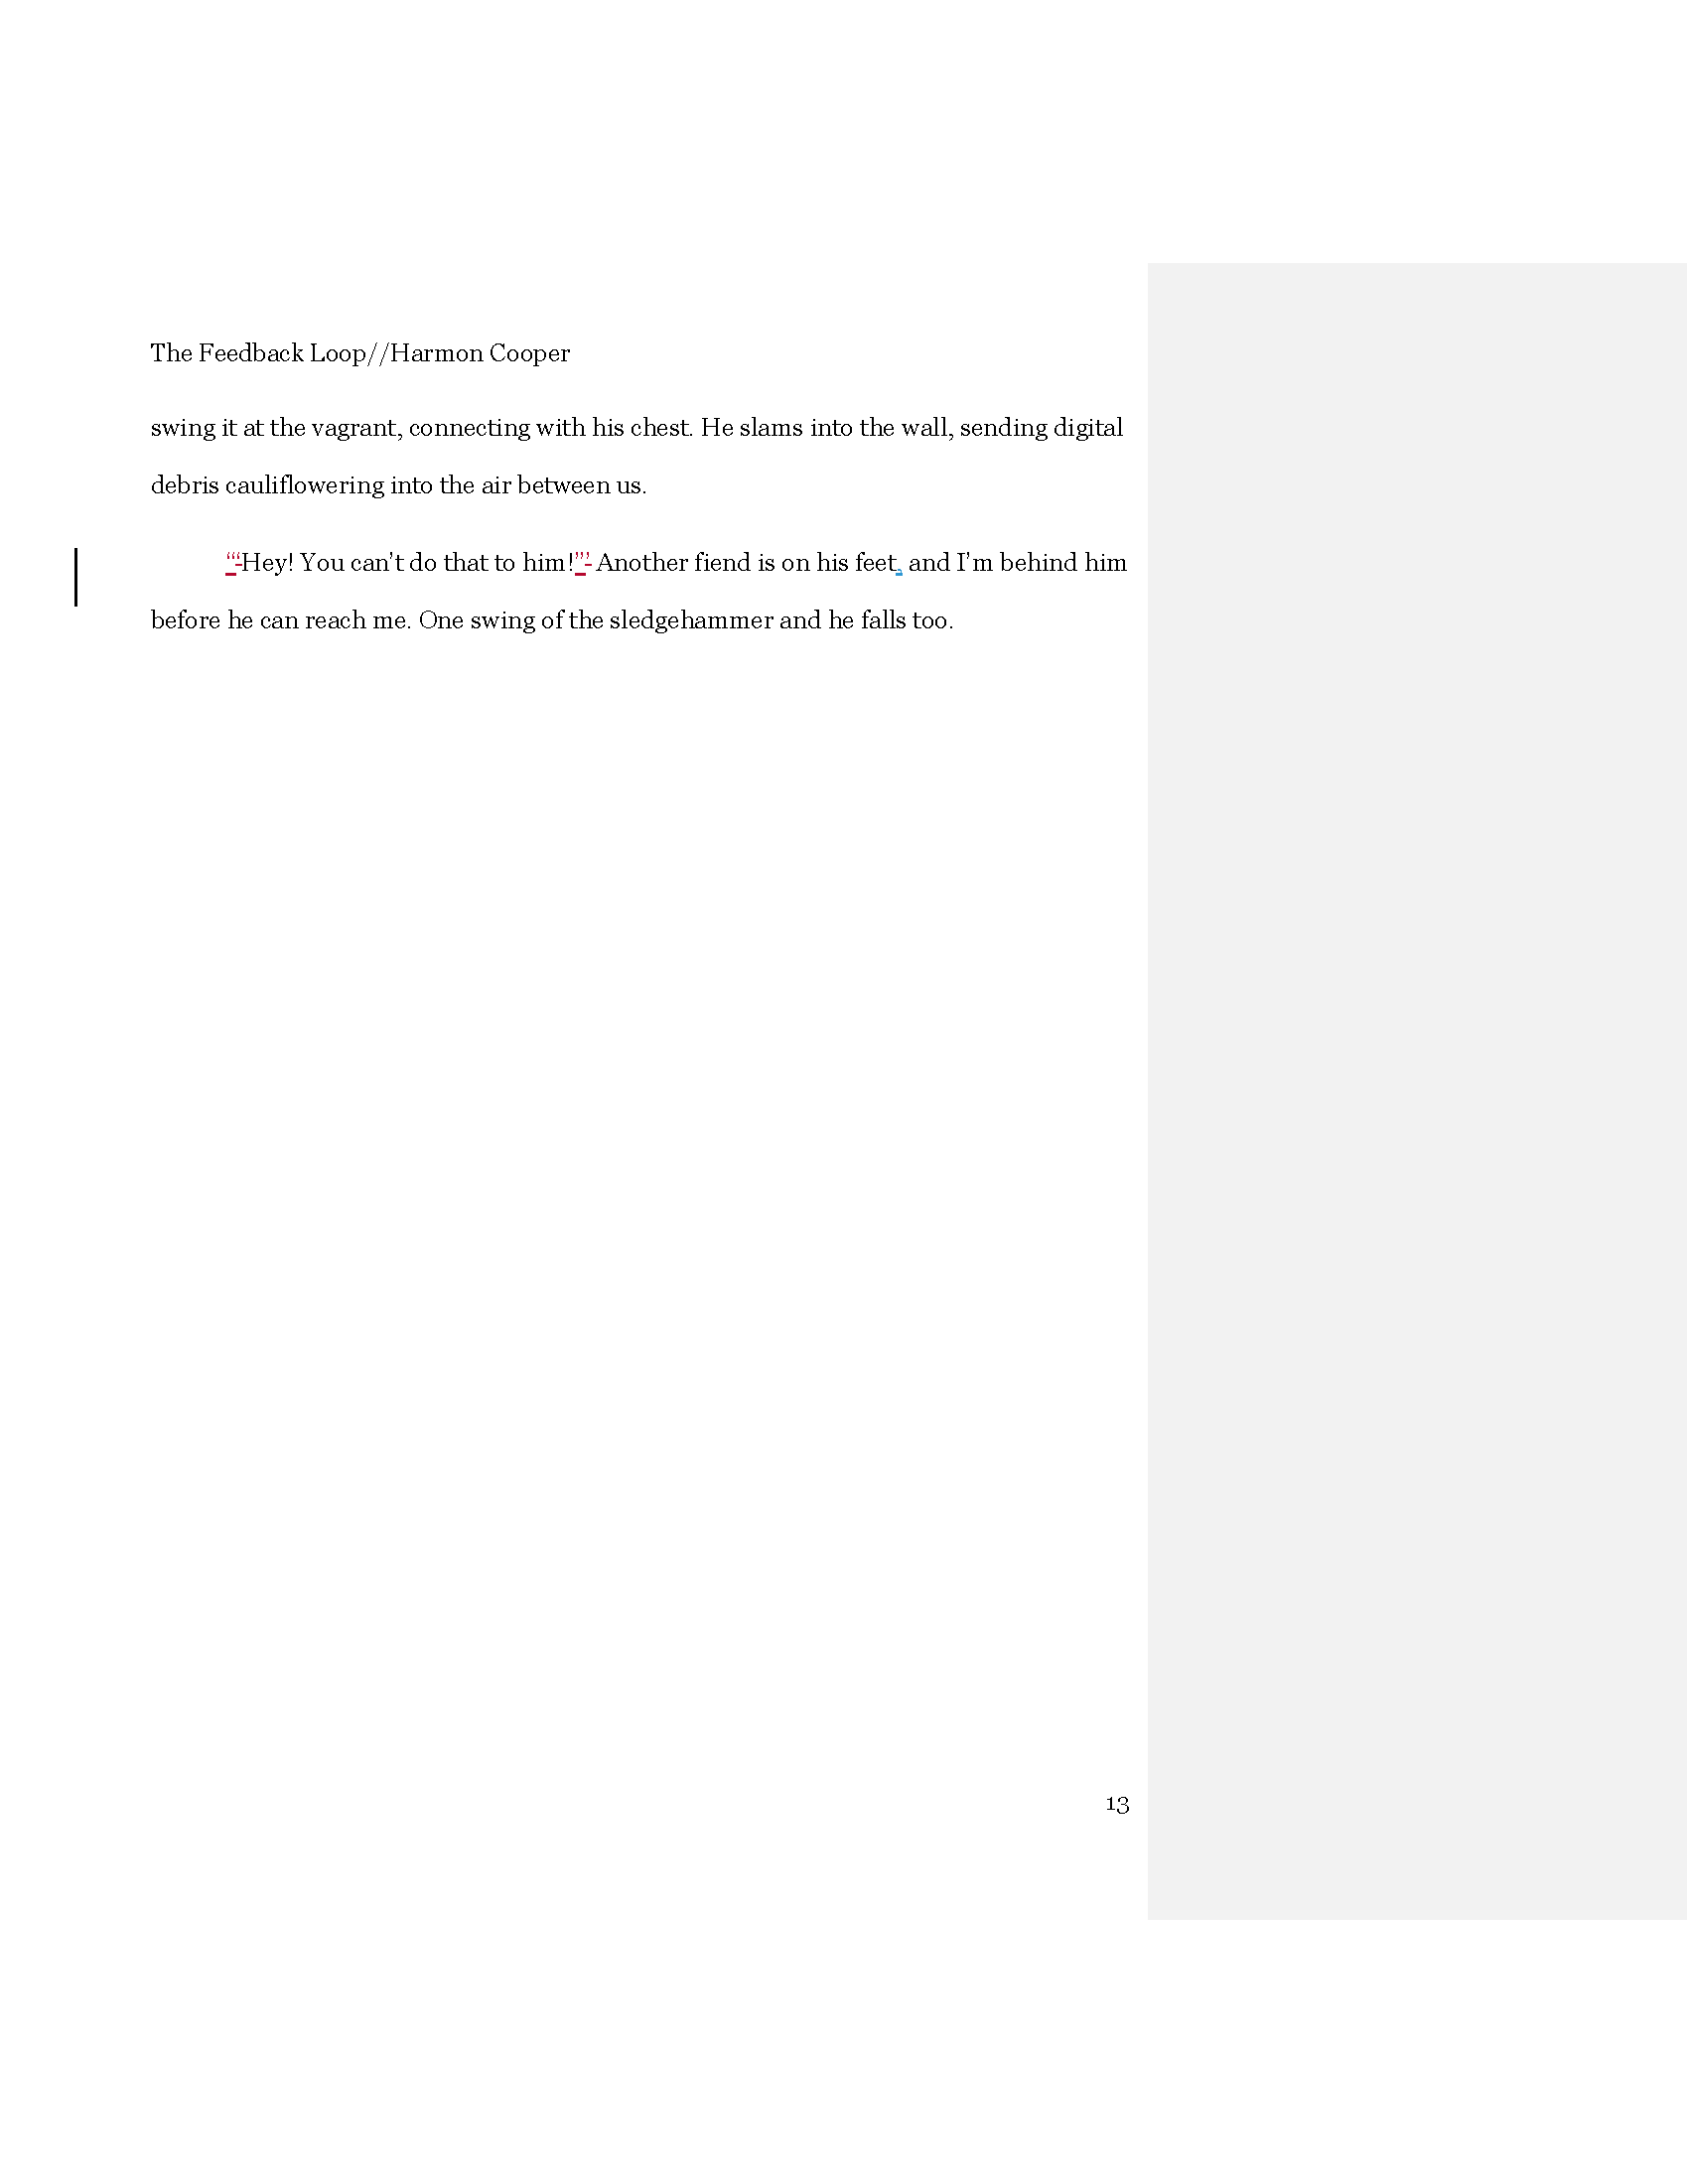 Episode 24 - Harmon Cooper - The Feedback Loop_Page_13.png